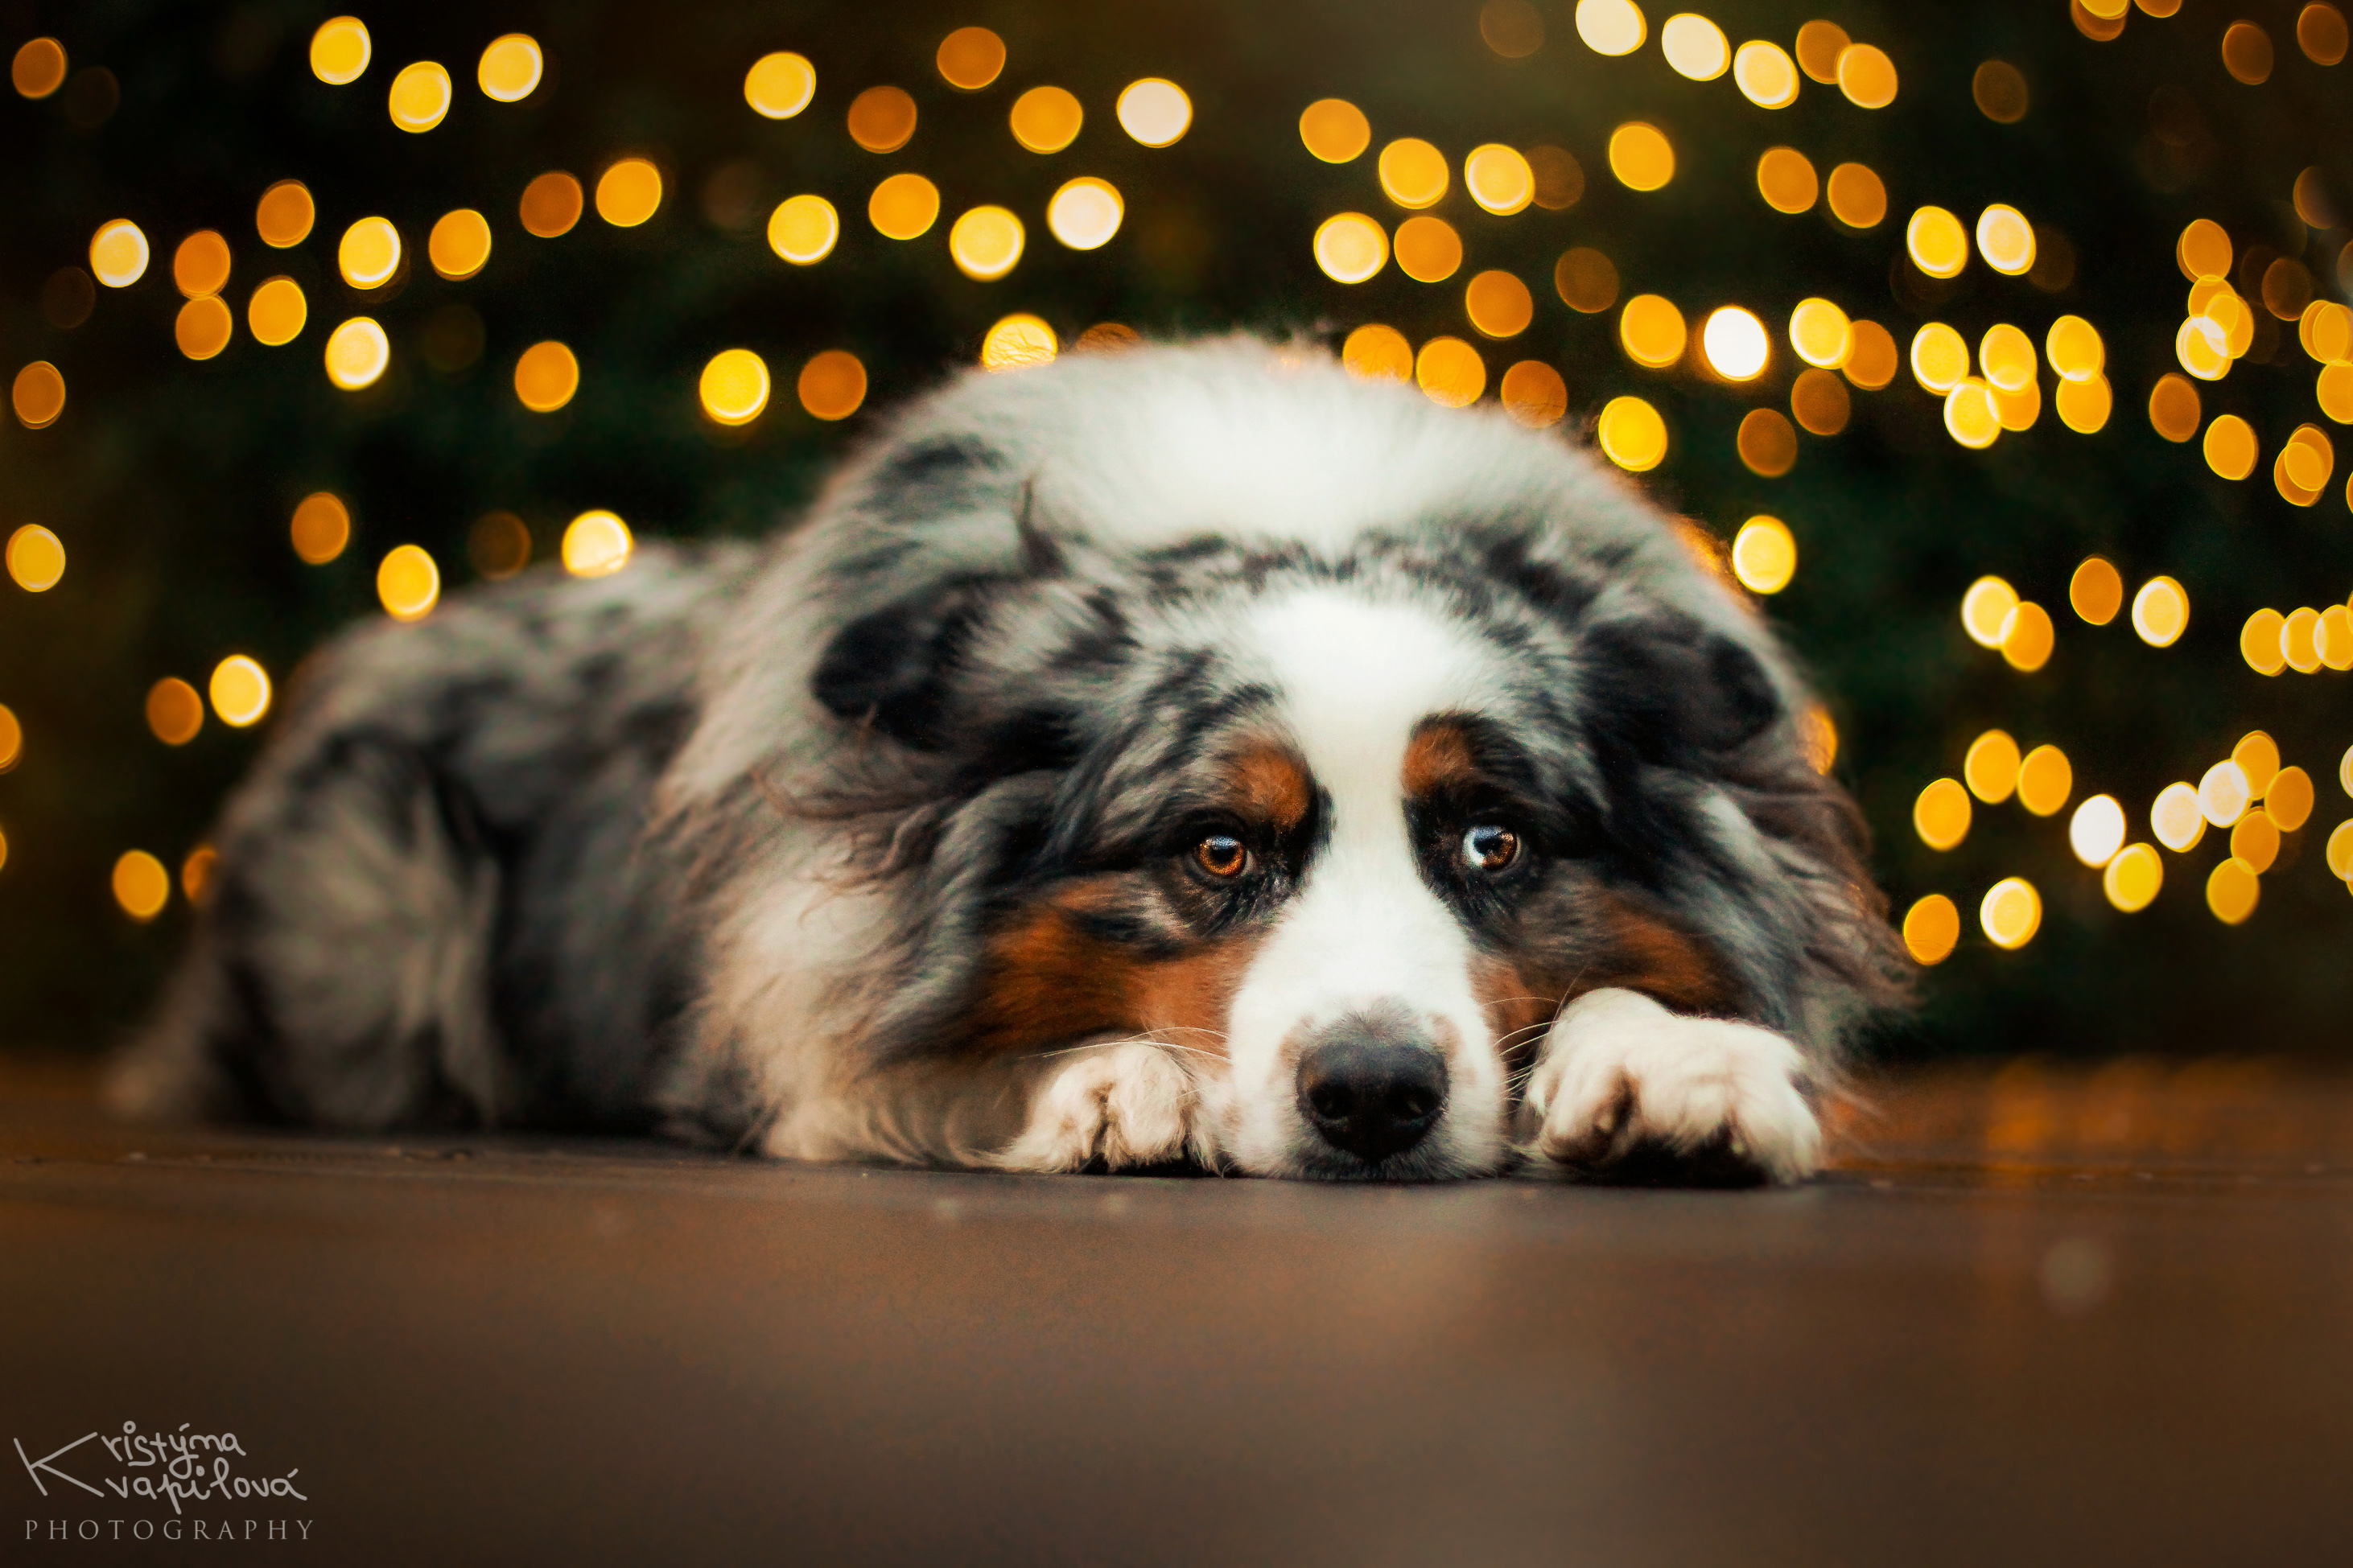 Image: Dog, lies, bokeh, lights